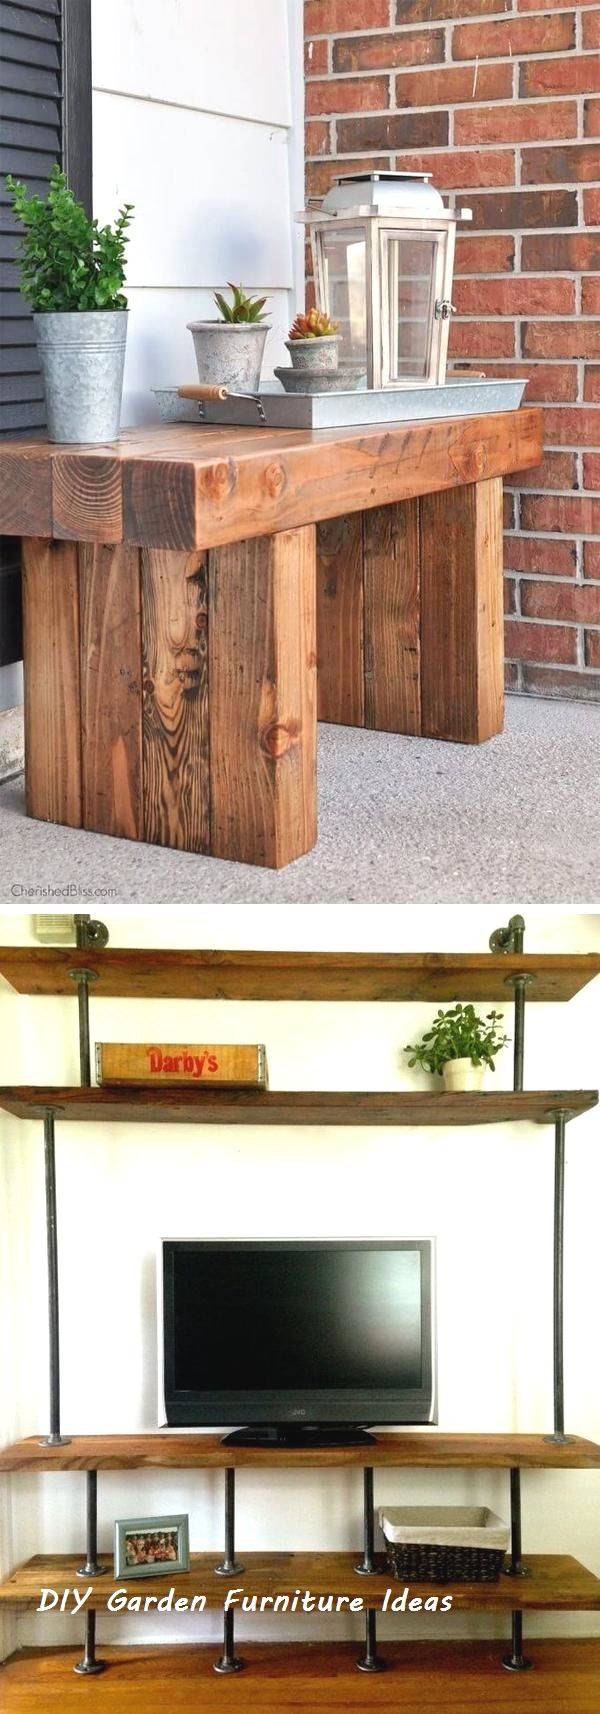 23 rustic garden furniture